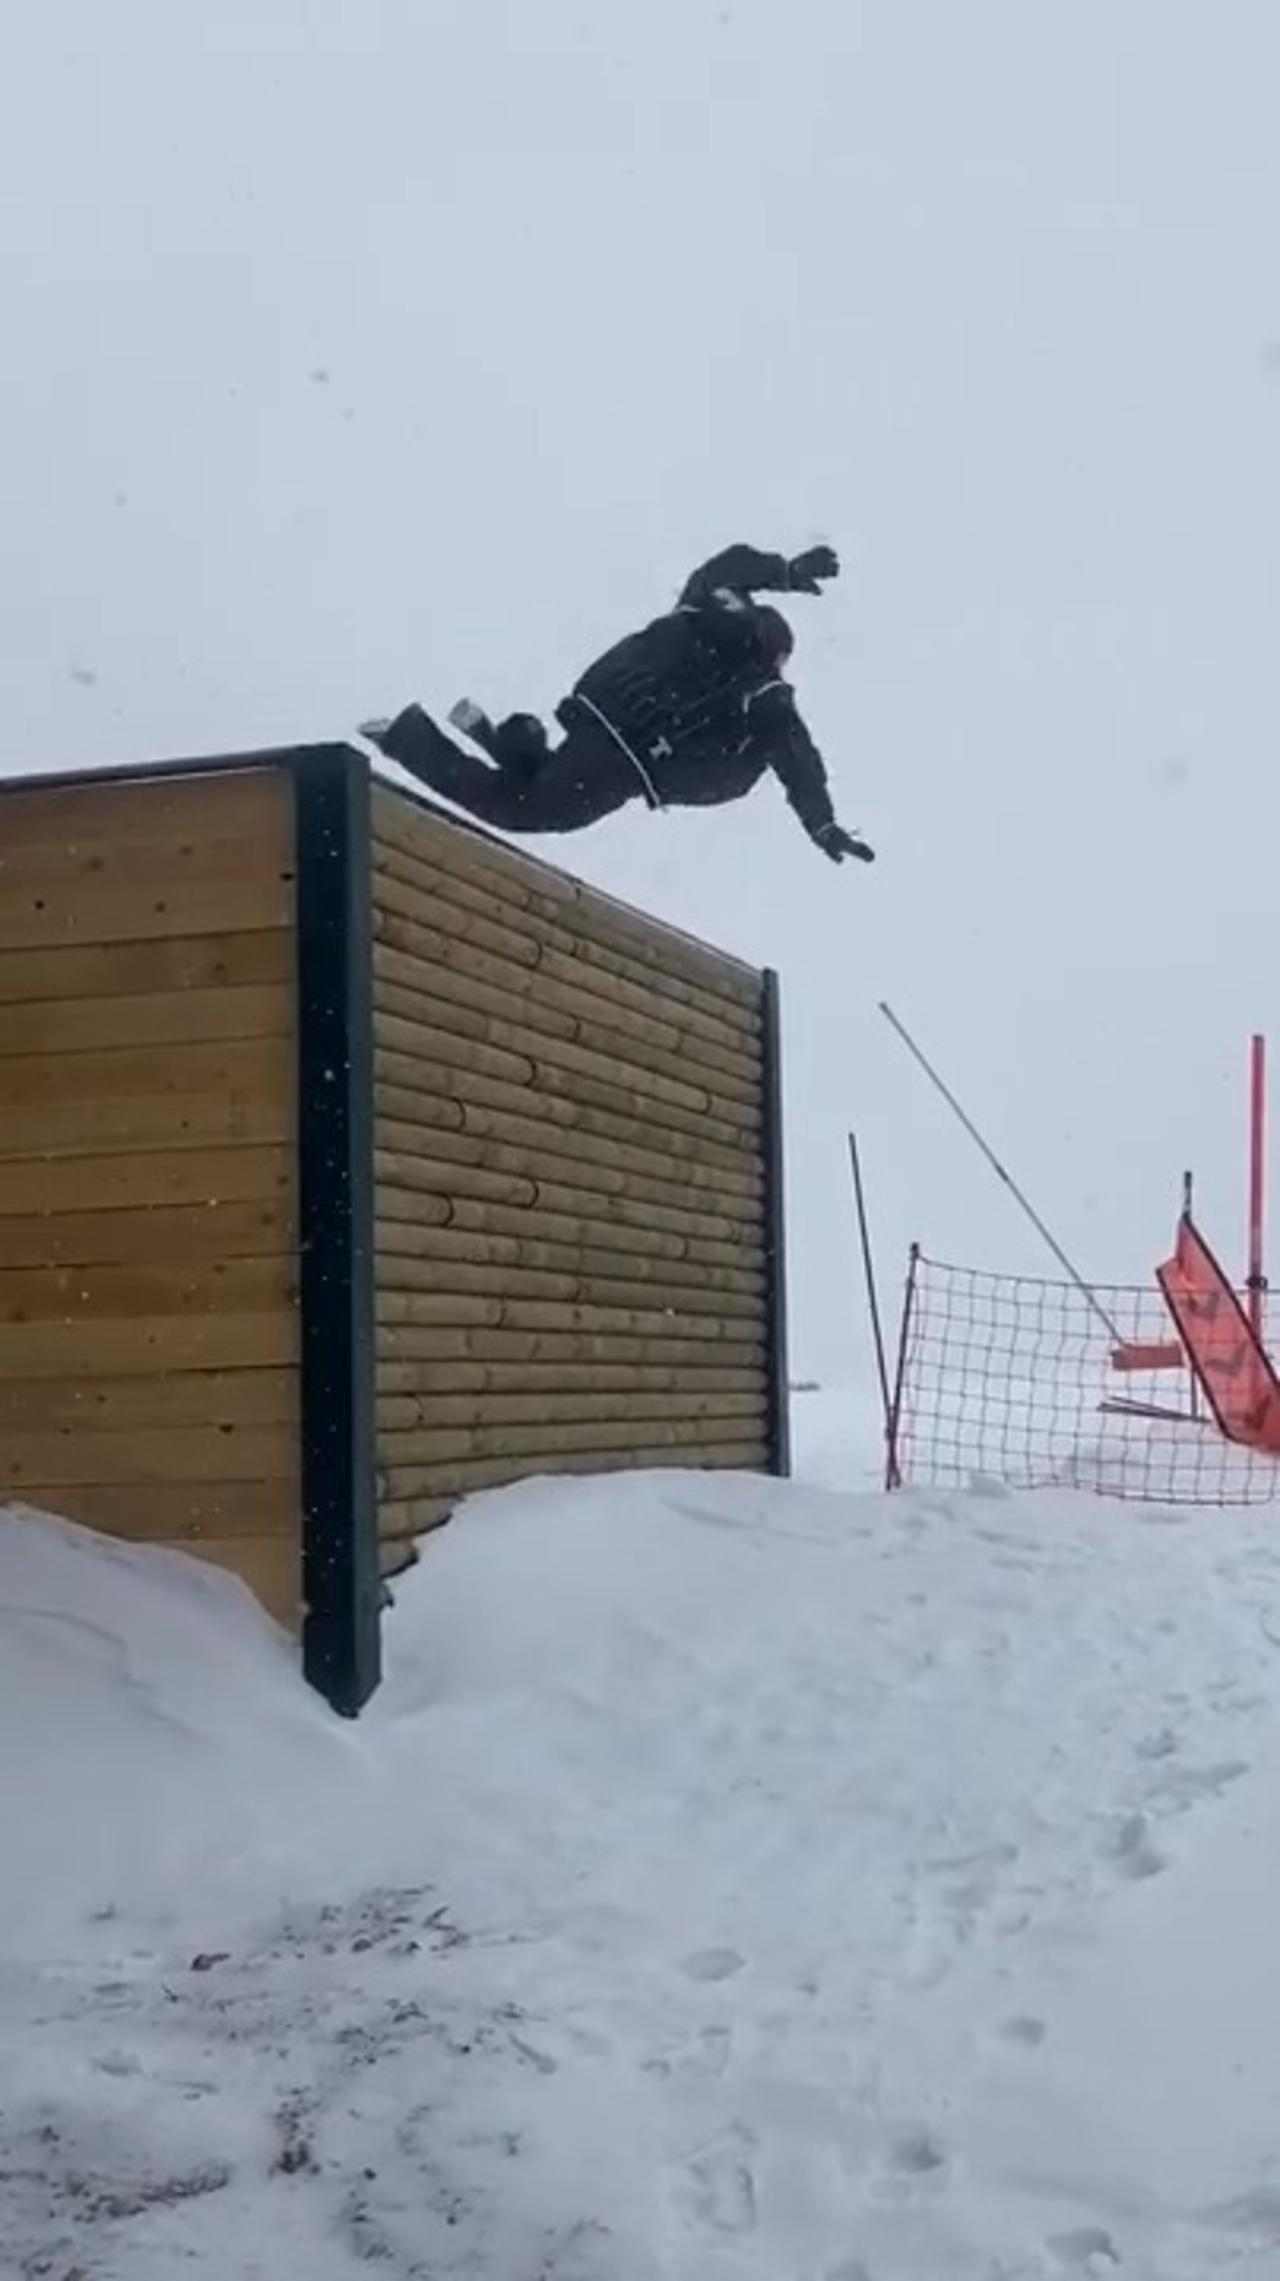 Guy Trying to Snowboard Down Icy Platform Slips and Falls Down to the Snowy Ground